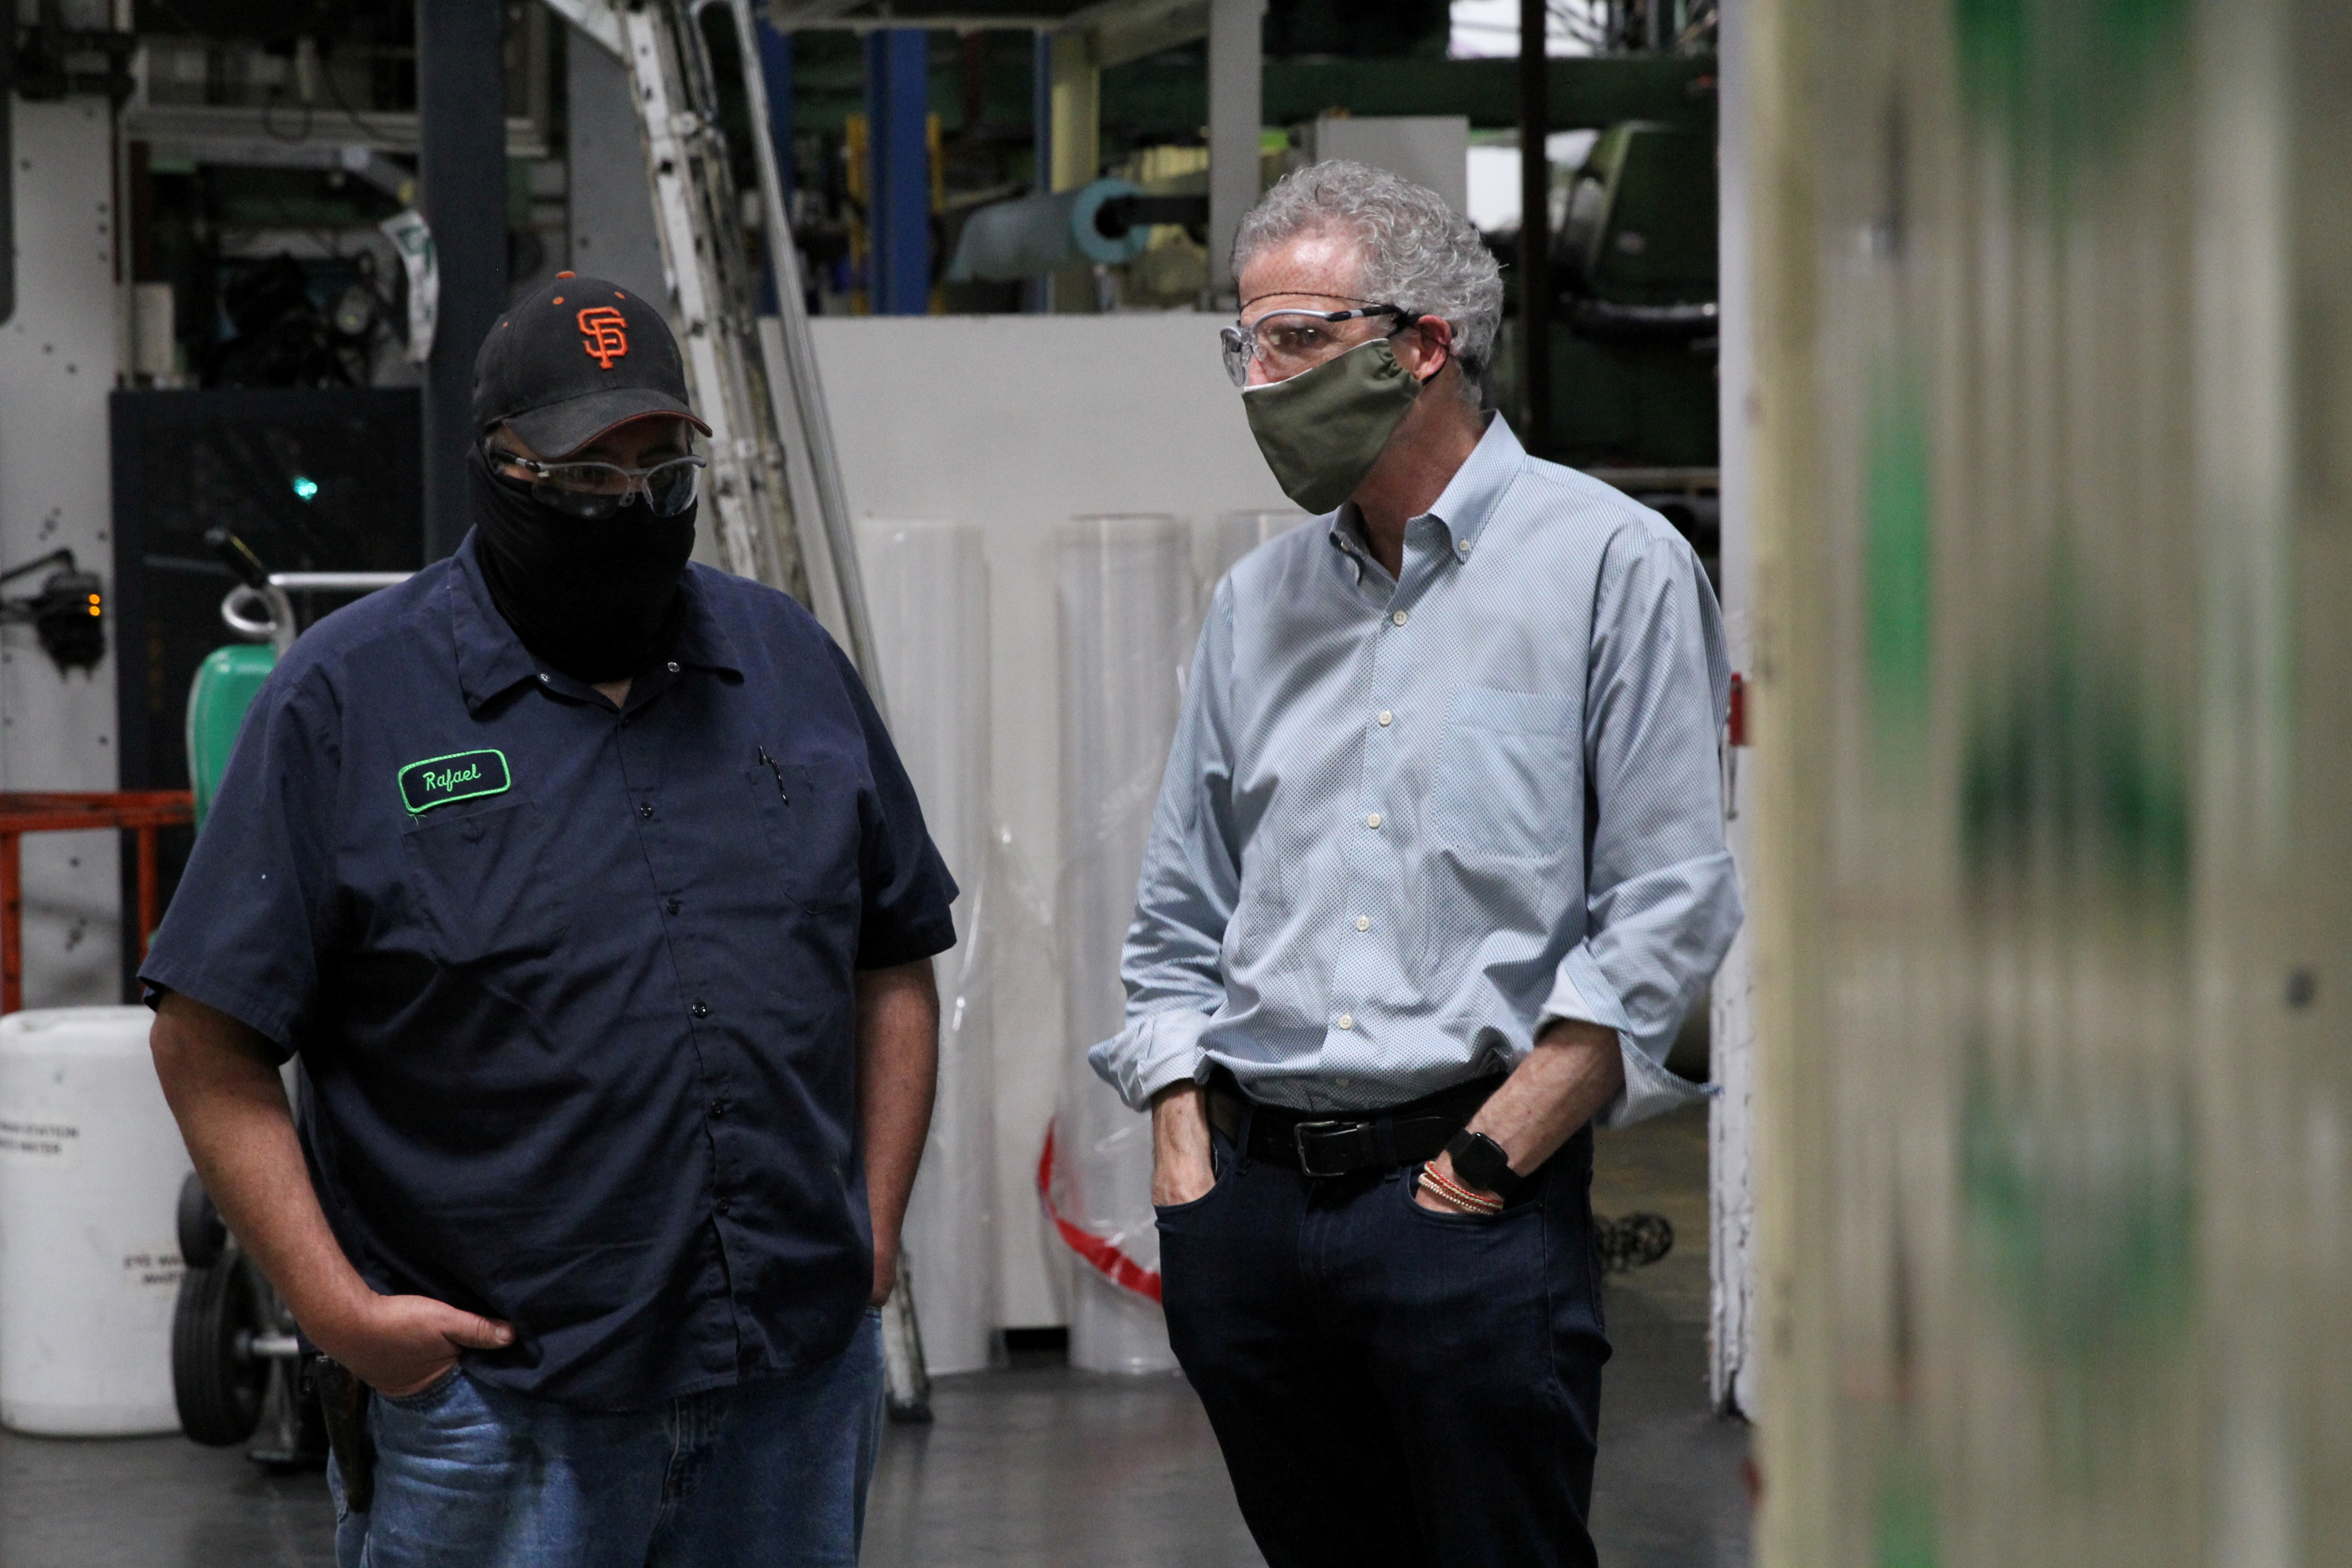 Kevin Kelly, CEO of Emerald Packaging, talks with an employee as they wear protective masks on a production floor of the company, which prints packaging material to be used for produce, amid the coronavirus disease (COVID-19) outbreak, in Union City, California, U.S. on May 7, 2020. REUTERS/Nathan Frandino/File Photo